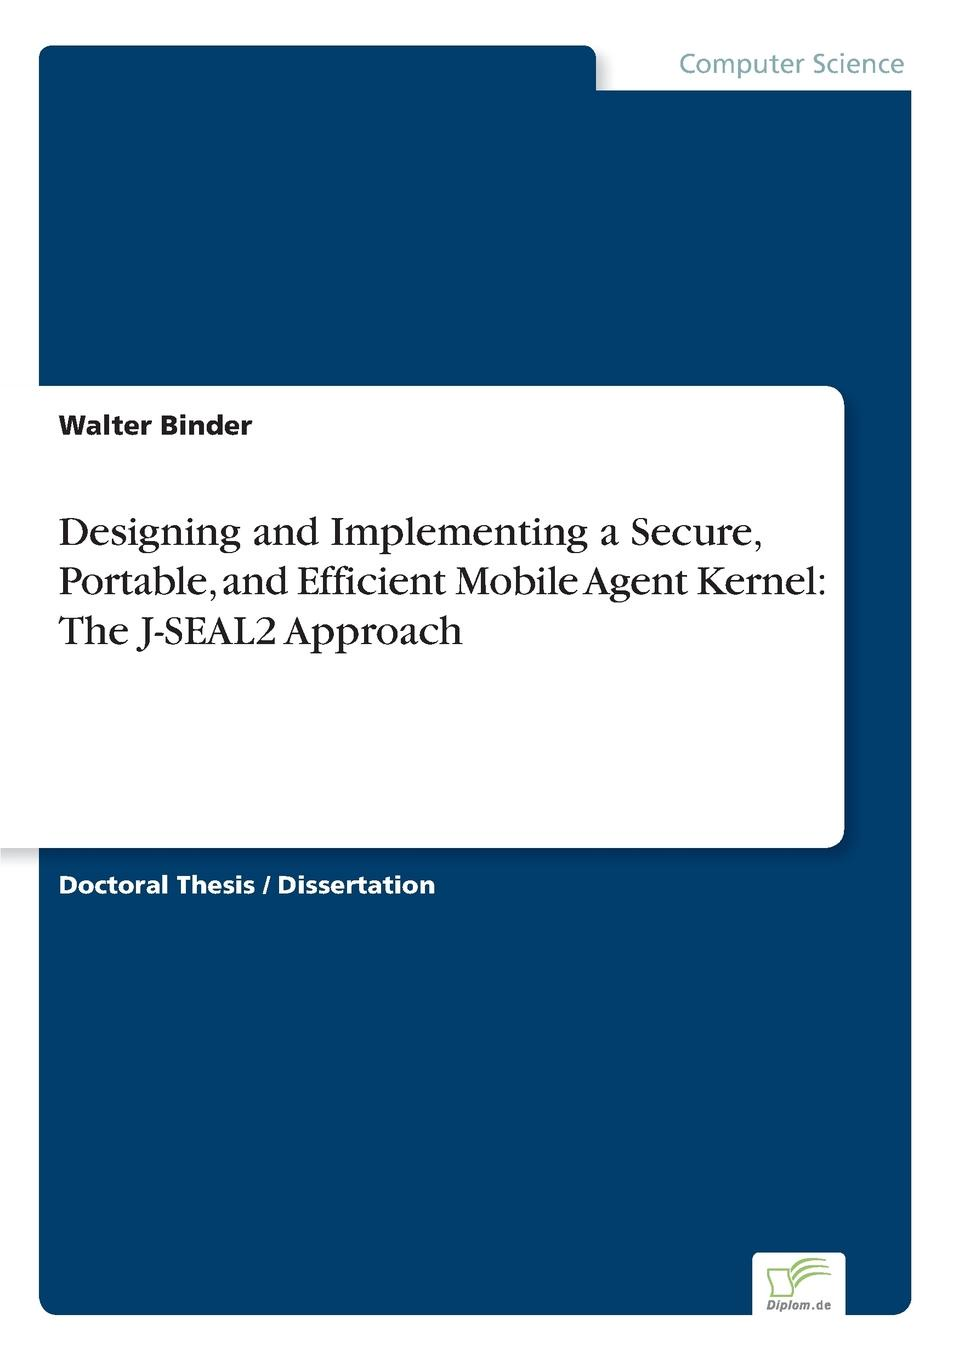 Walter Binder Designing and Implementing a Secure, Portable, and Efficient Mobile Agent Kernel. The J-SEAL2 Approach mobile agents